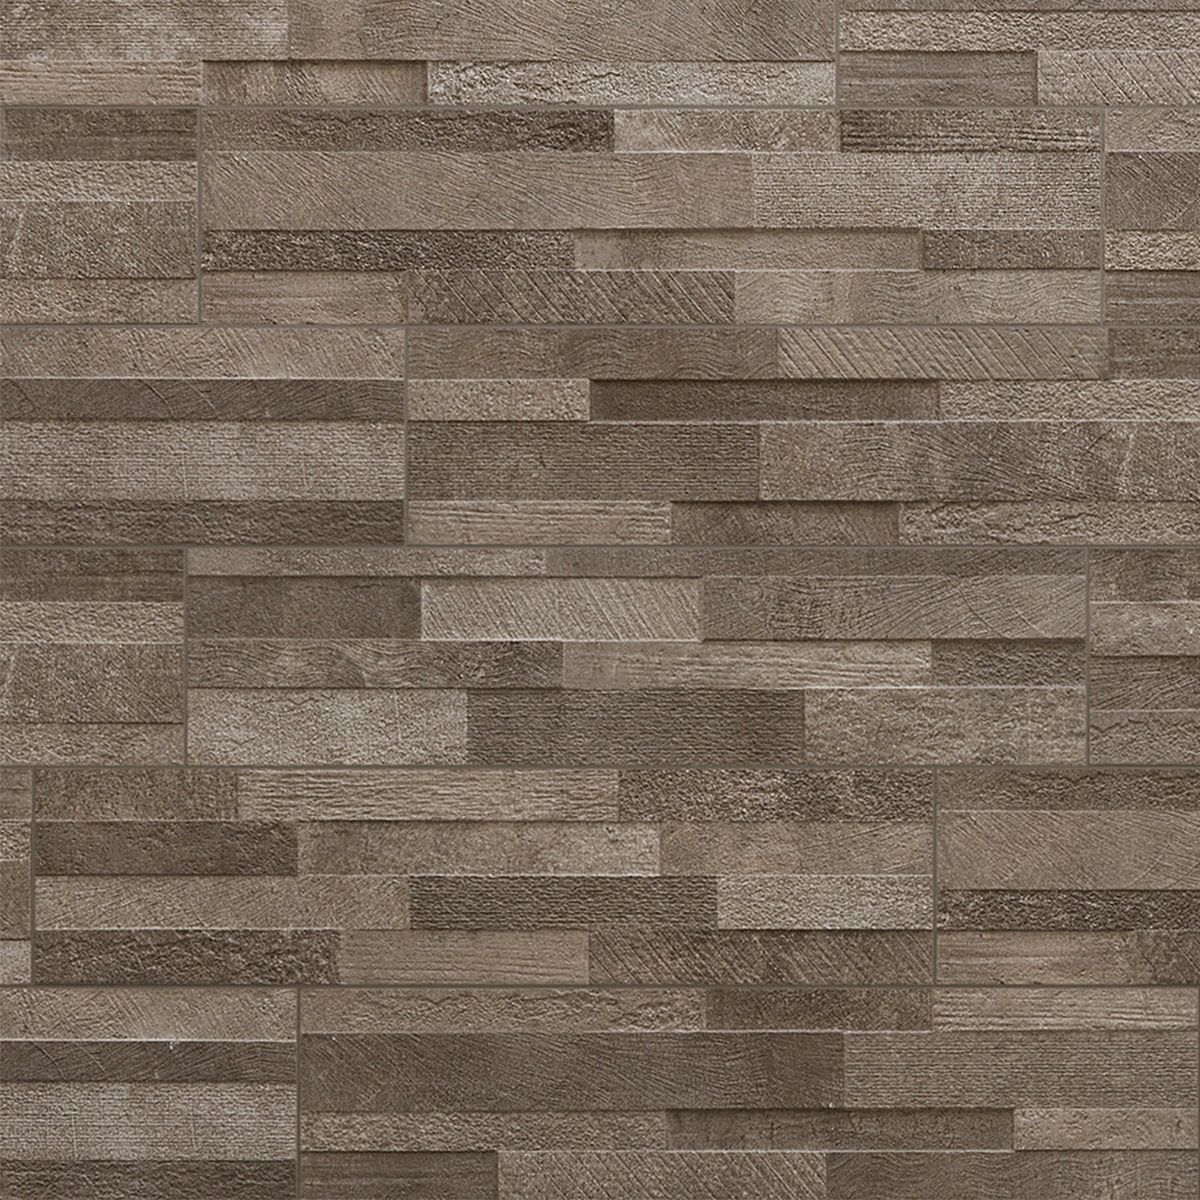 Lodge Stone 3D Taupe 6x24 Textured Porcelain Wall Tile